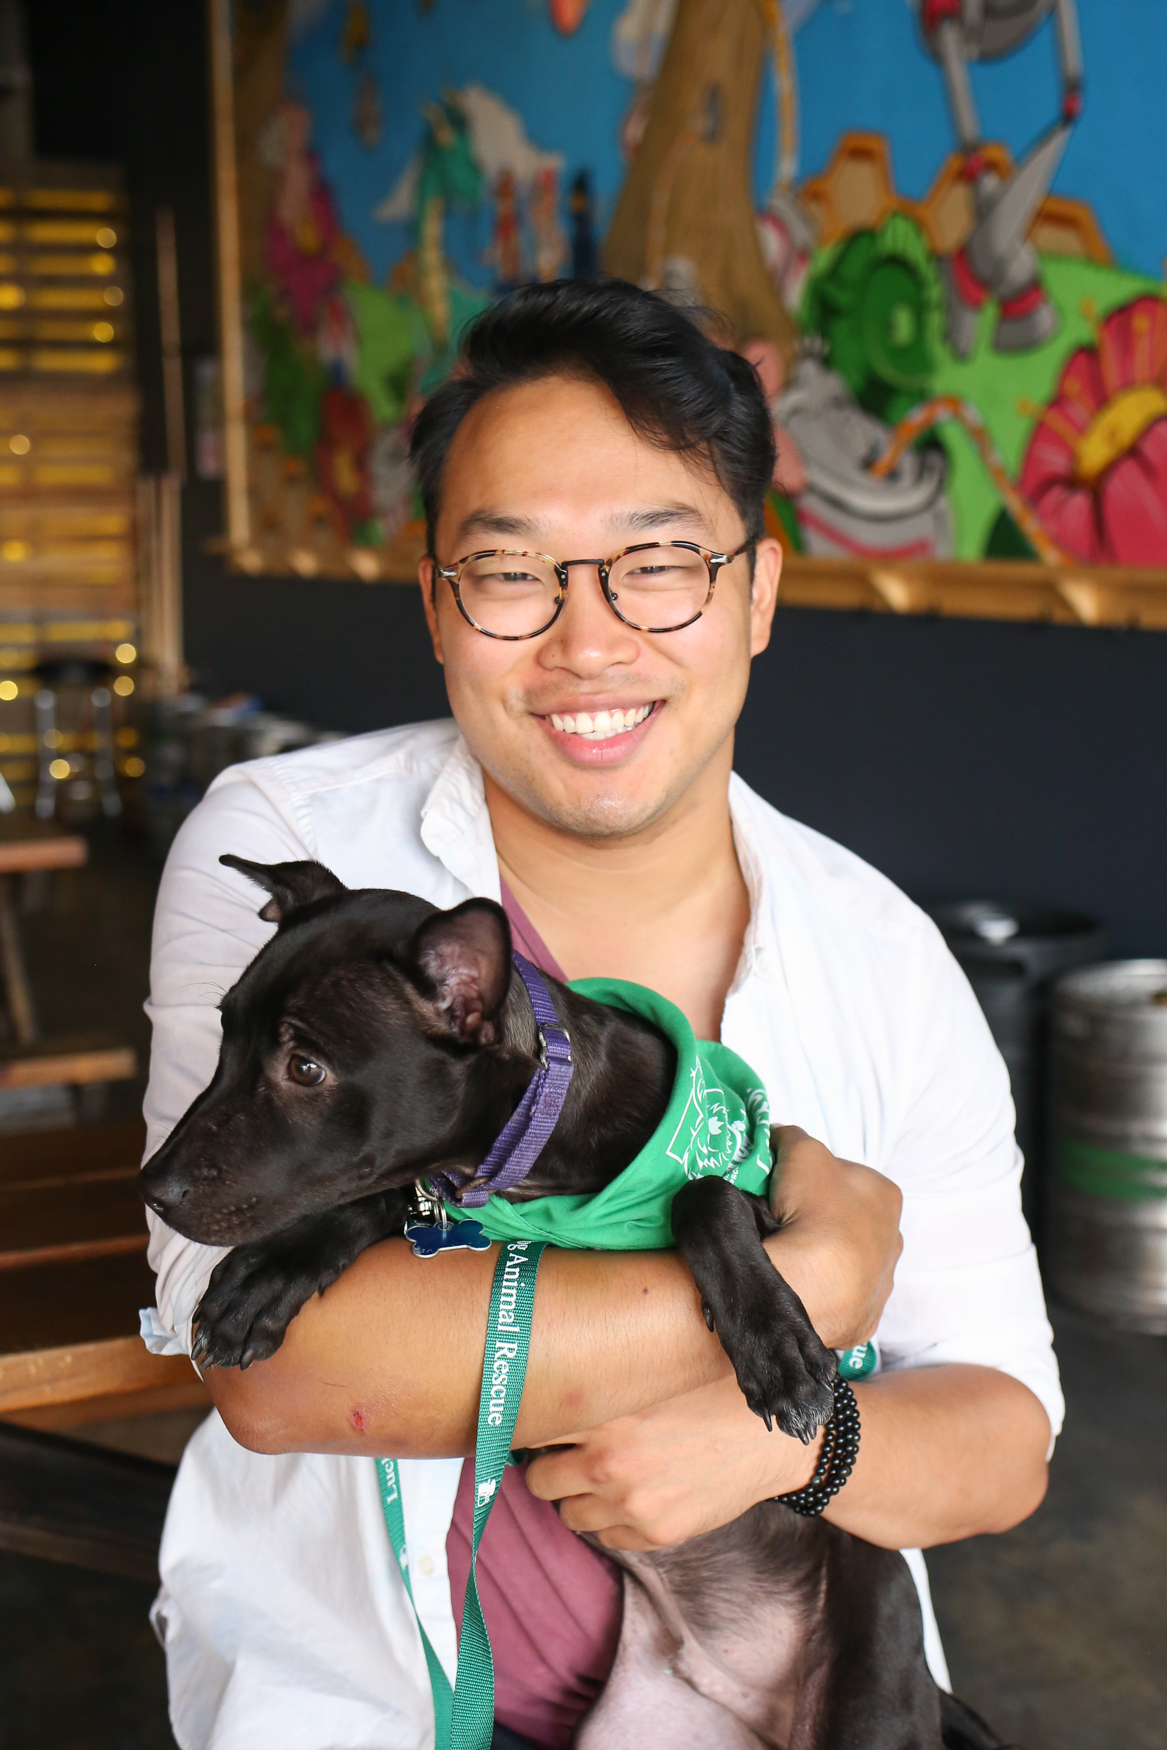 Meet Onyx and Luke, a 5-month-old Lab mix and a 28-year-old human respectively.{ }Photo location: Midlands Beer Garden (Image: Amanda Andrade-Rhoades/ DC Refined)